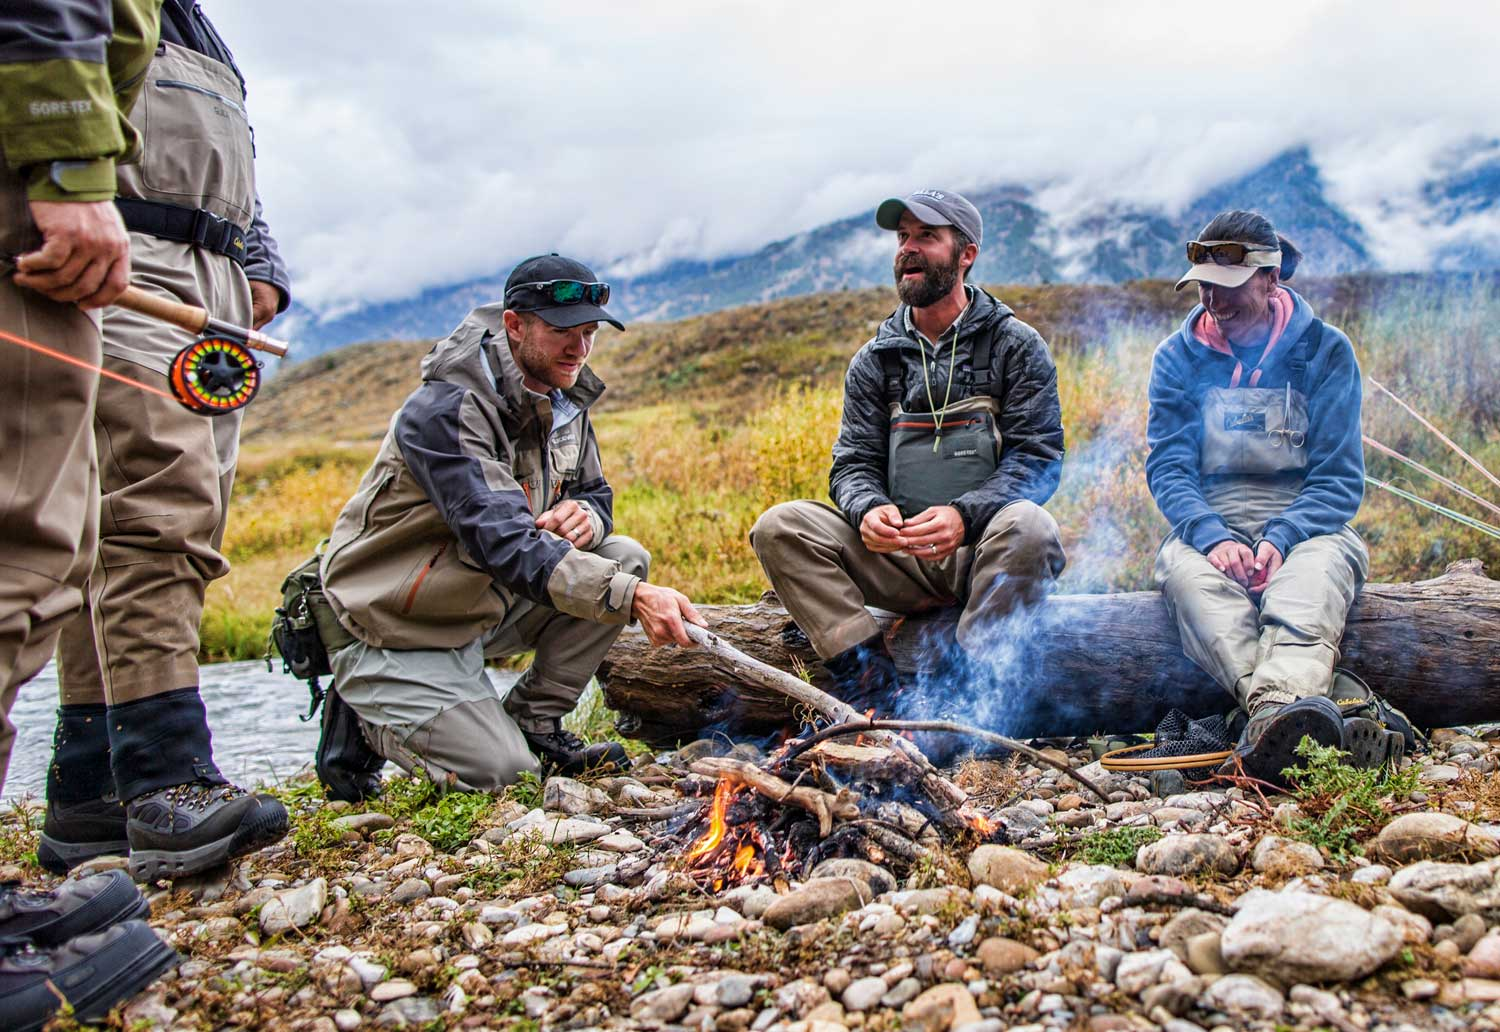 fly-fisherman-at-campfire-cooking-up-catch